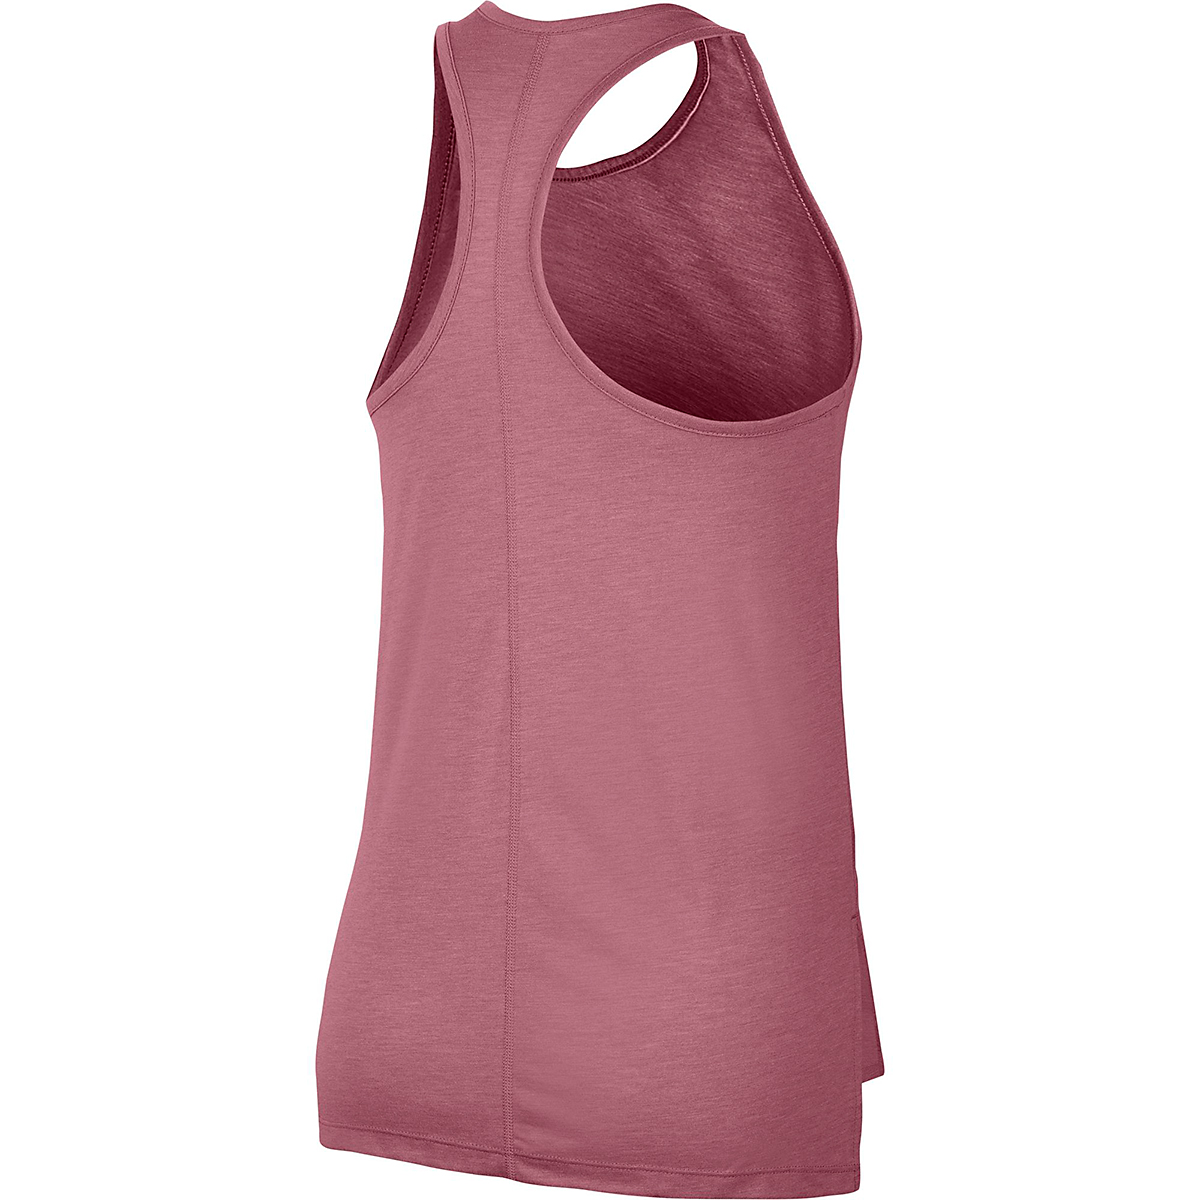 Women's Nike Yoga Layer Tank - Color: Desert Berry/Heather/Lite Arctic Pink - Size: M, Desert Berry/Heather/Lite Arctic Pink, large, image 4